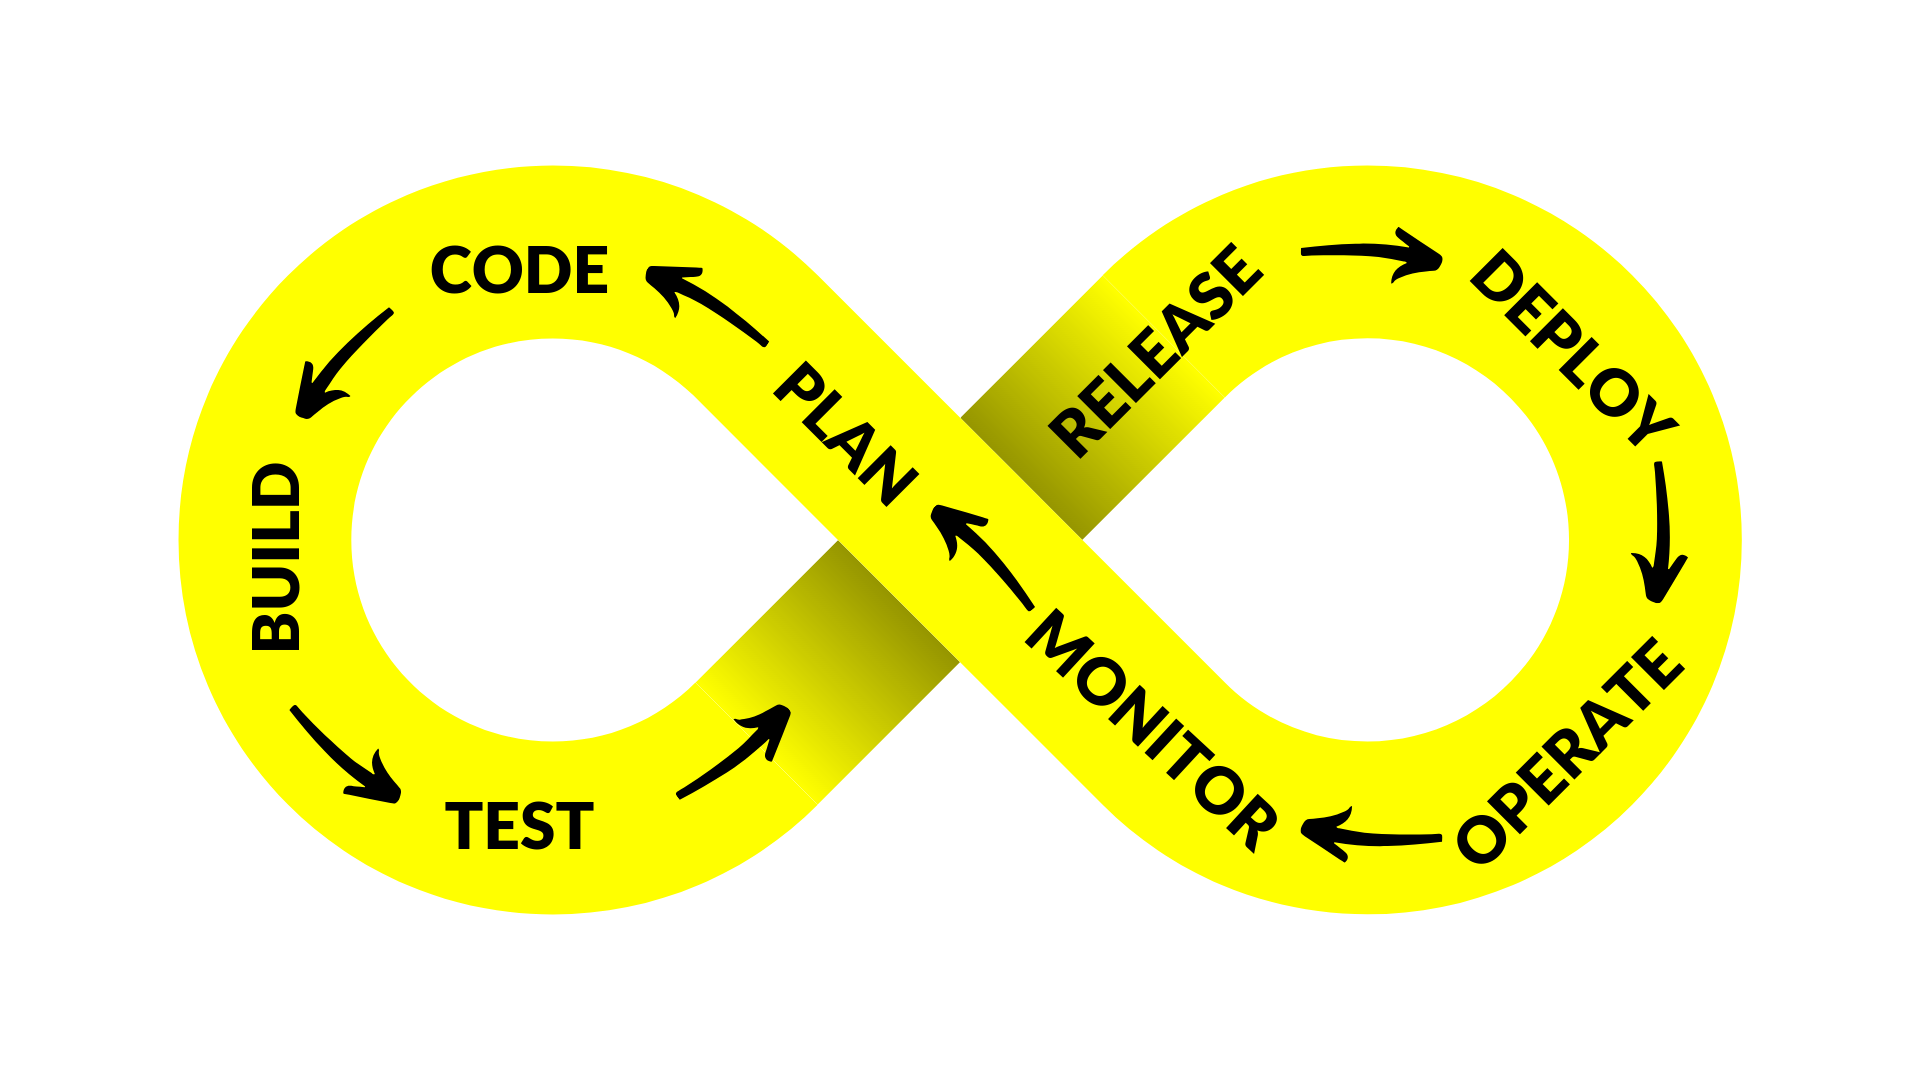 The DevOps Model and Framework Infinity Loop Image